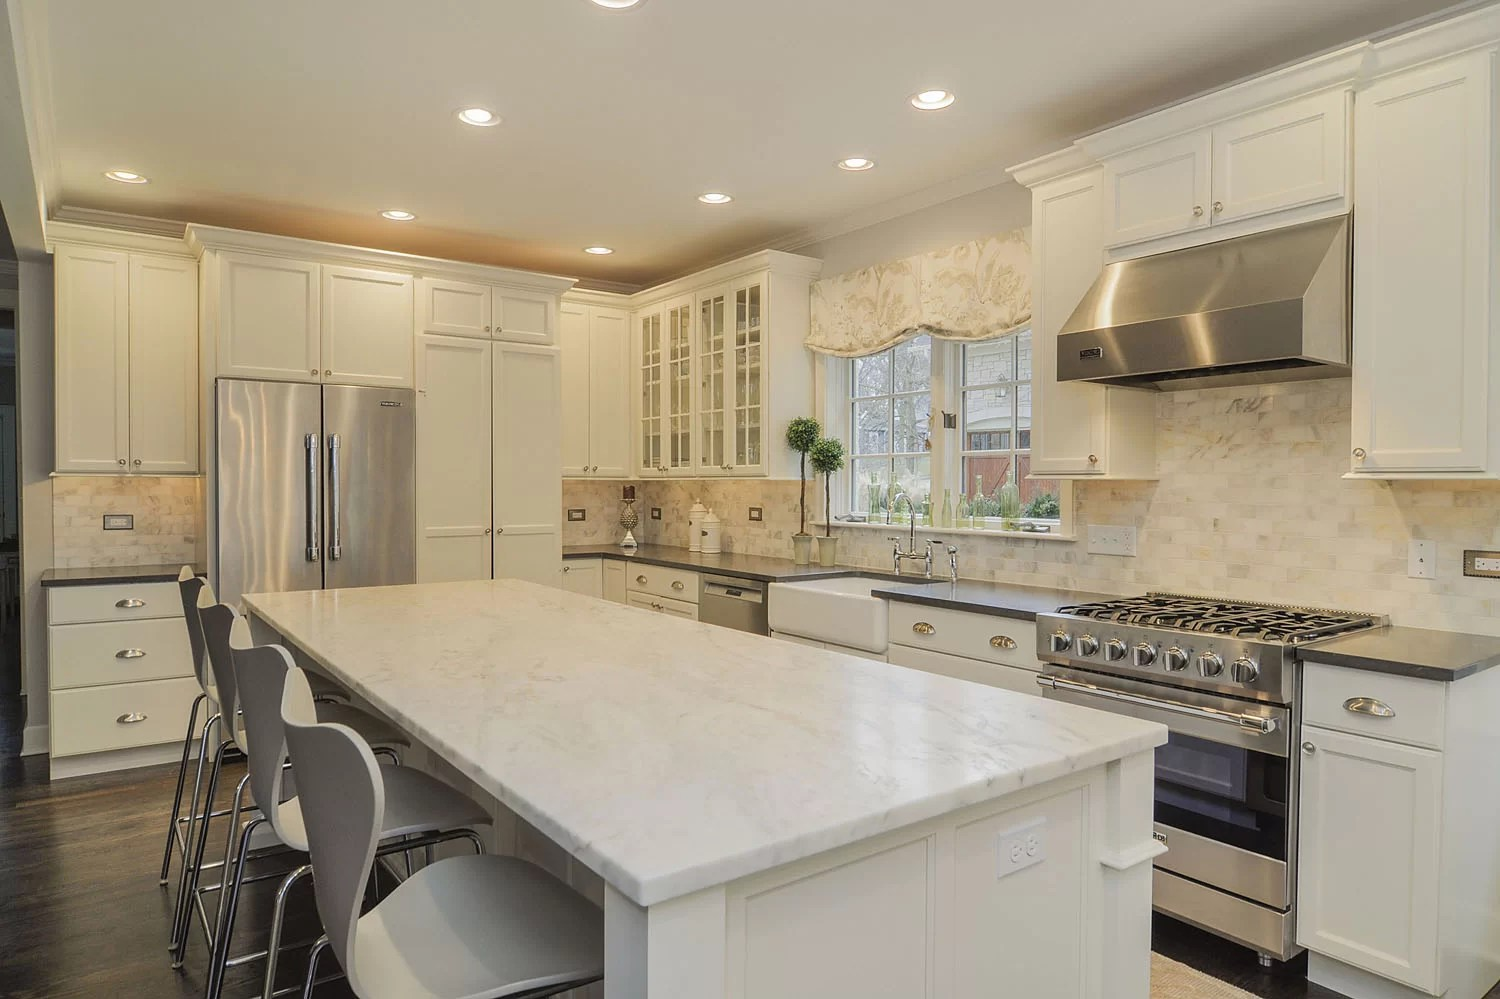 Ben & Ellen's Kitchen Remodel Pictures | Home Remodeling ... on Kitchen Remodeling Ideas  id=35573